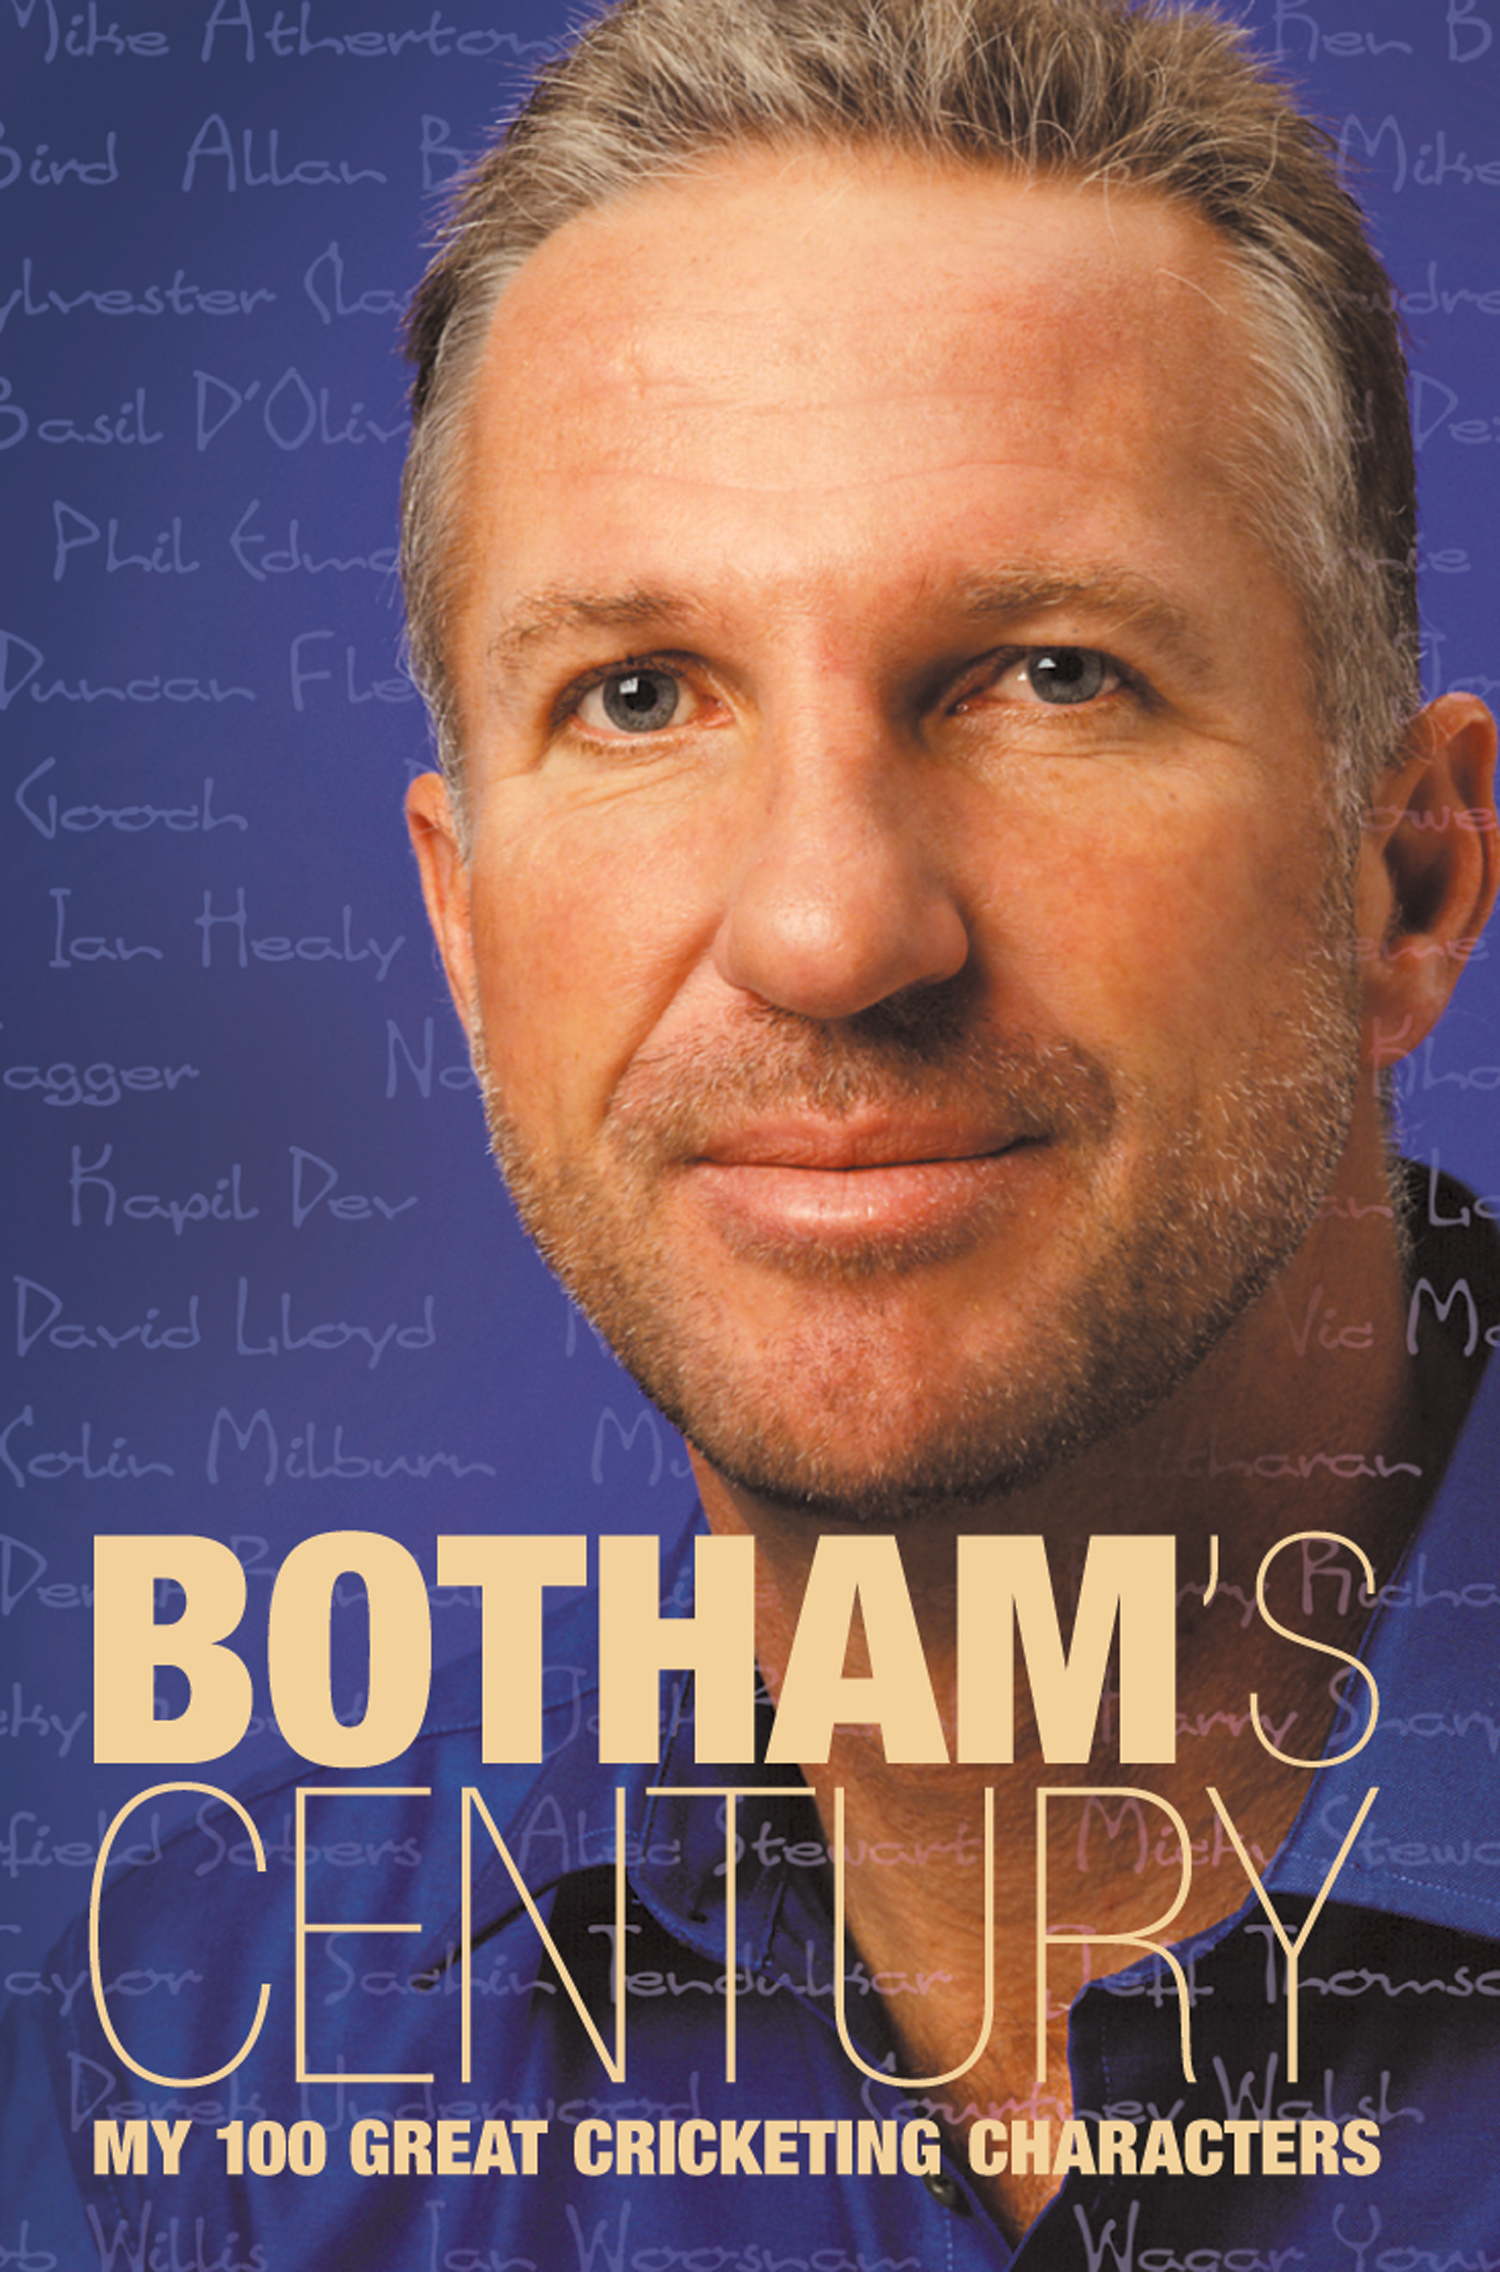 Botham?s Century: My 100 great cricketing characters